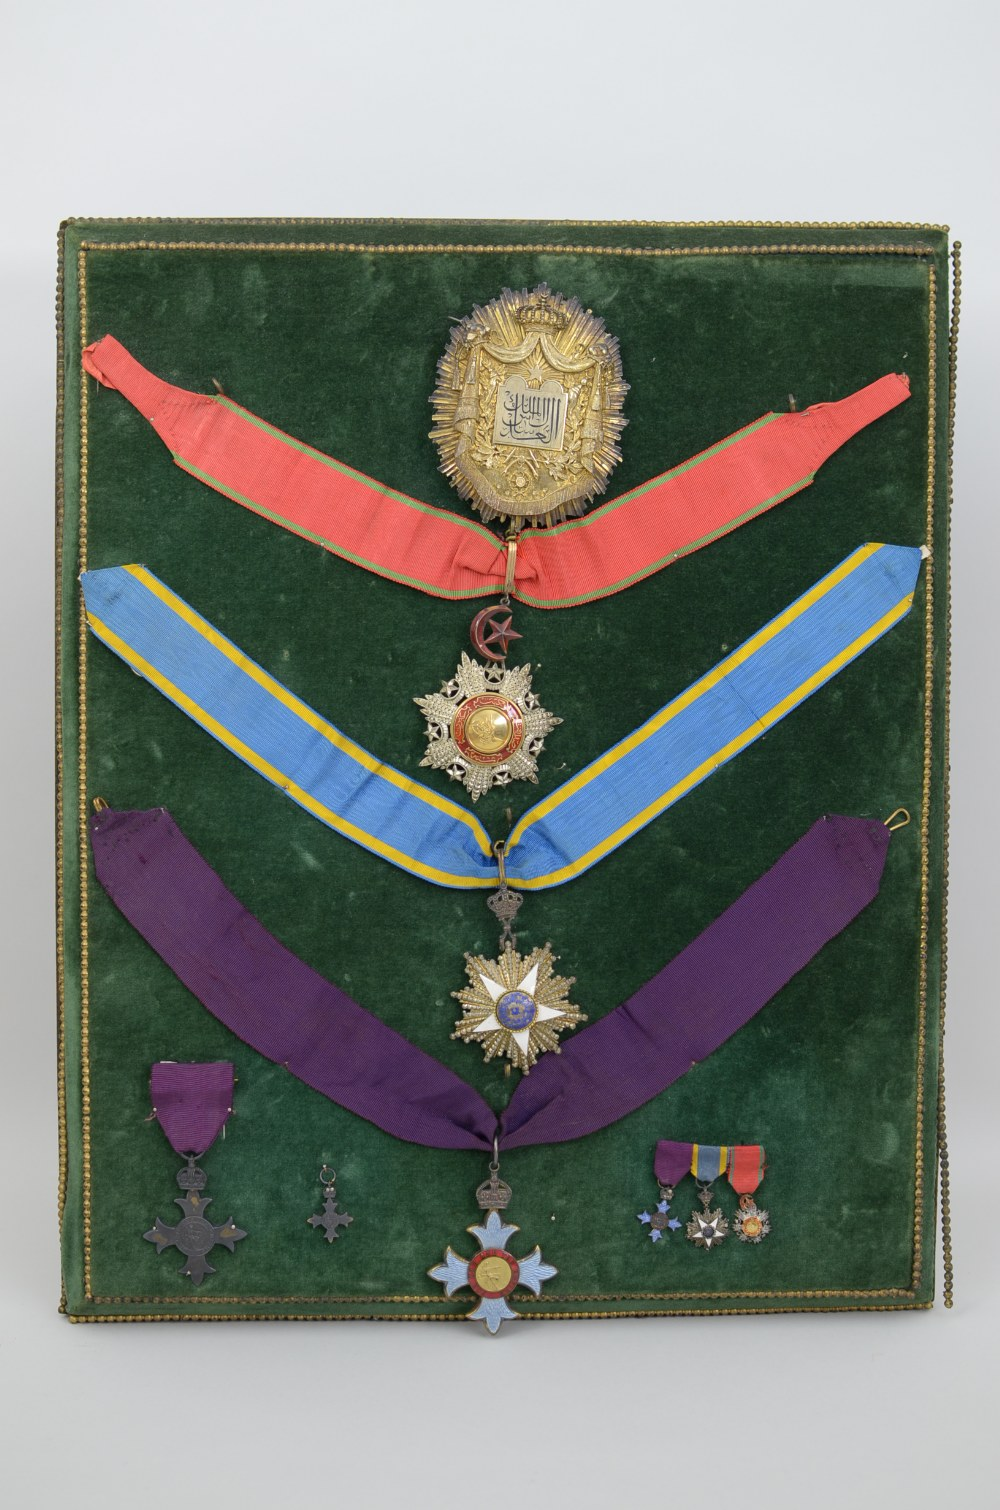 Lot 282 - Five: THE MOST EXCELLENT ORDER OF THE BRITISH EMPIRE, 1st issue, C.B.E., (Civil) Commander's neck